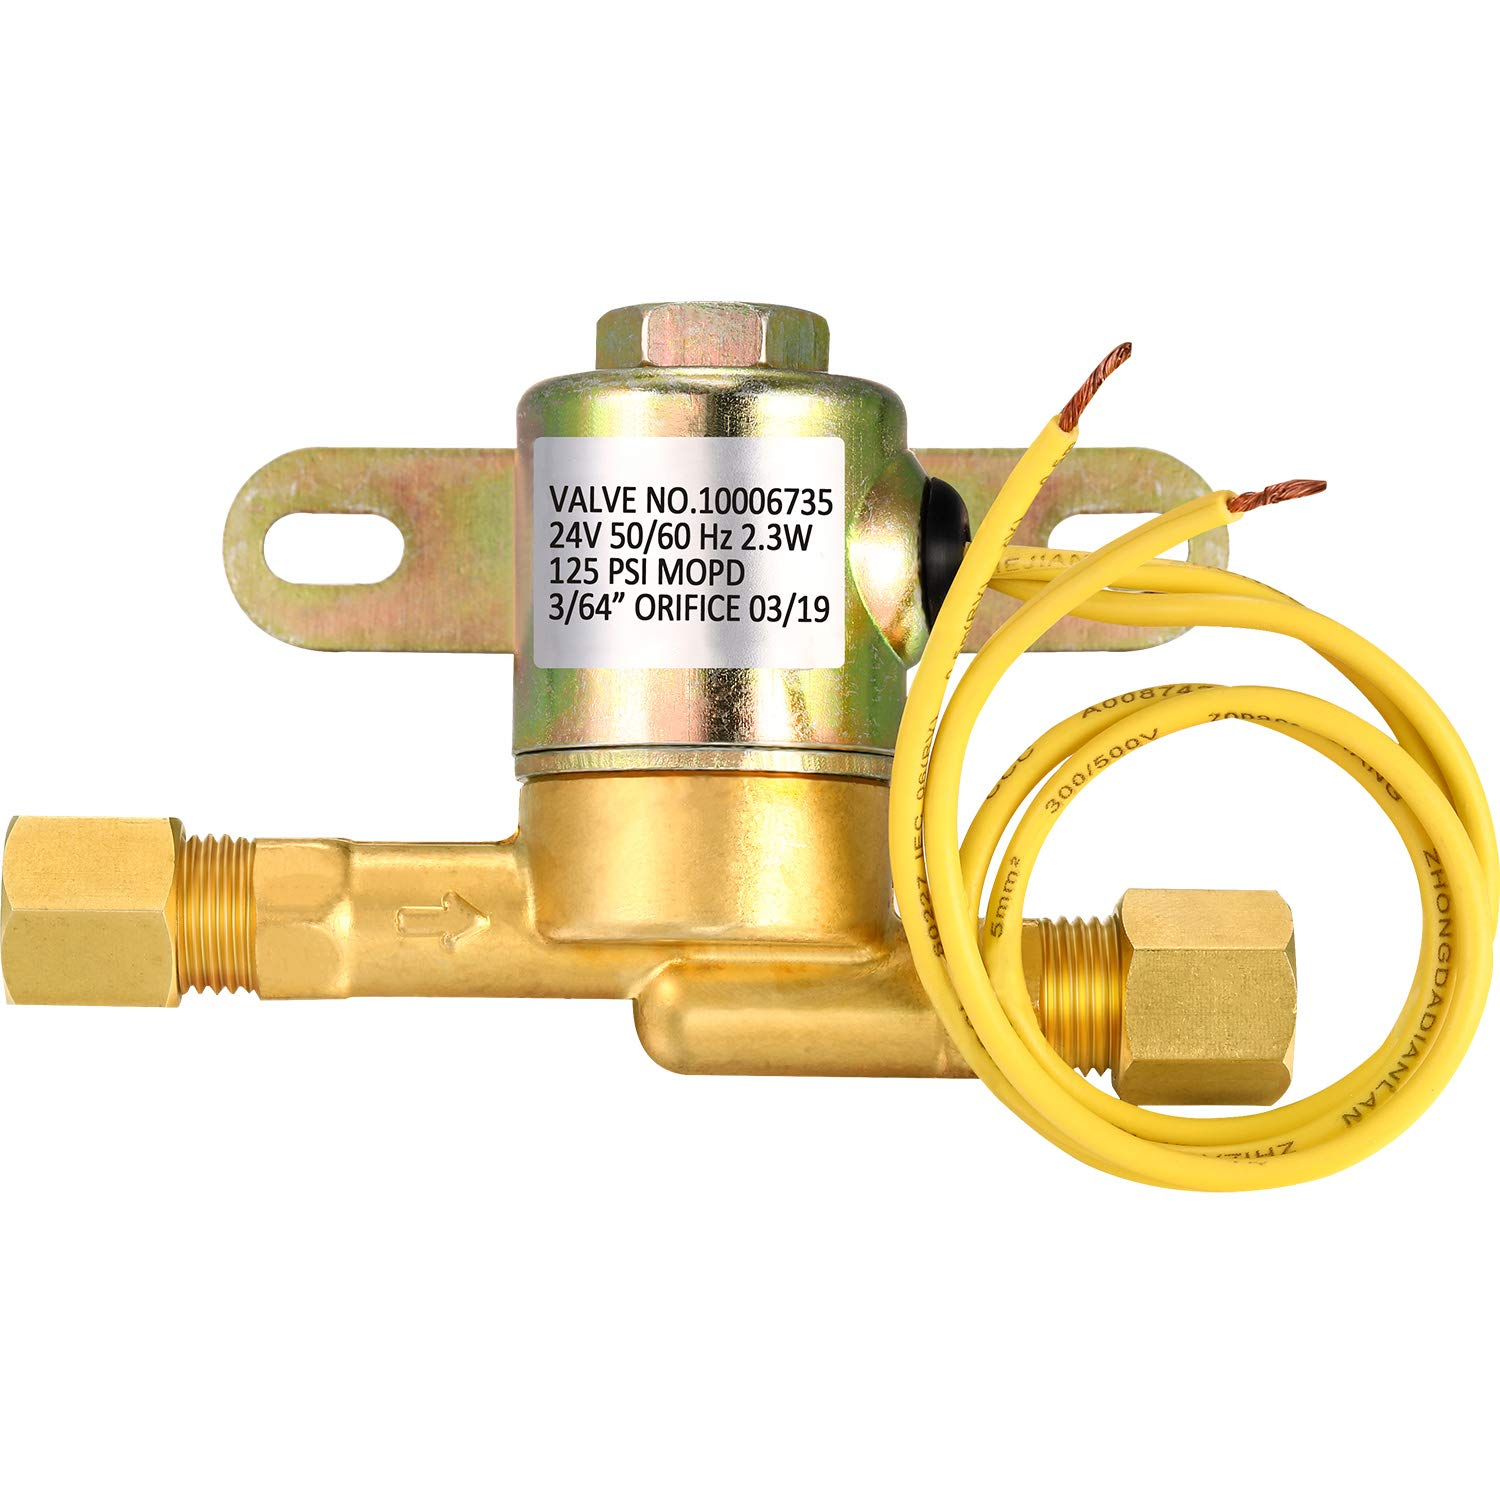 Humidifier Valve 4040 Solenoid Valve Brass Air Valve Compatible with Aprilaire Fit for 400 500 600 700 Humidifier 24 Volt by Mudder